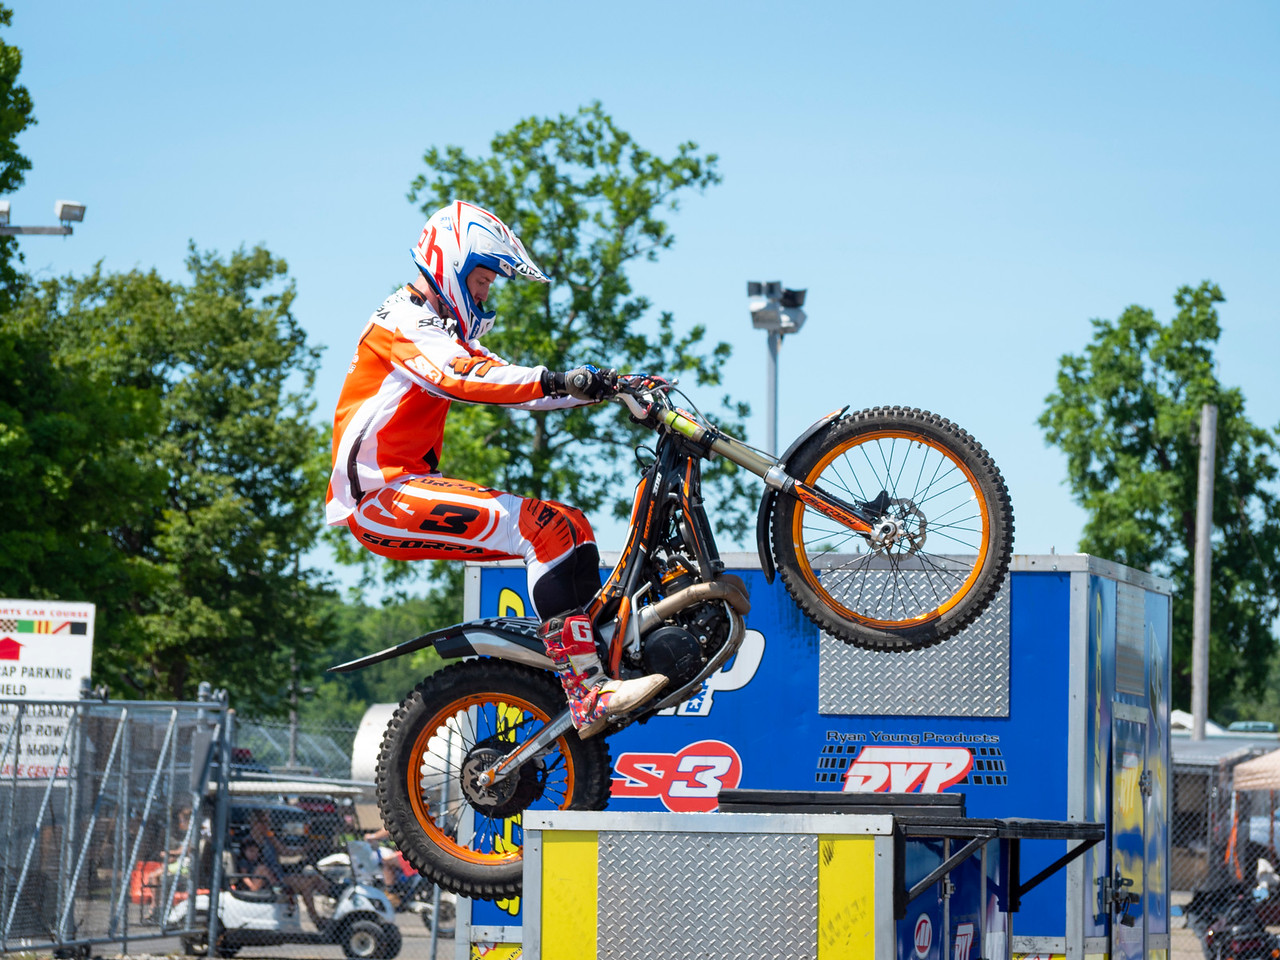 Xtreme Trials exhibition at 2018 AMA Vintage Motorcycle Days (Credit- Larry Hamel-Lambert)